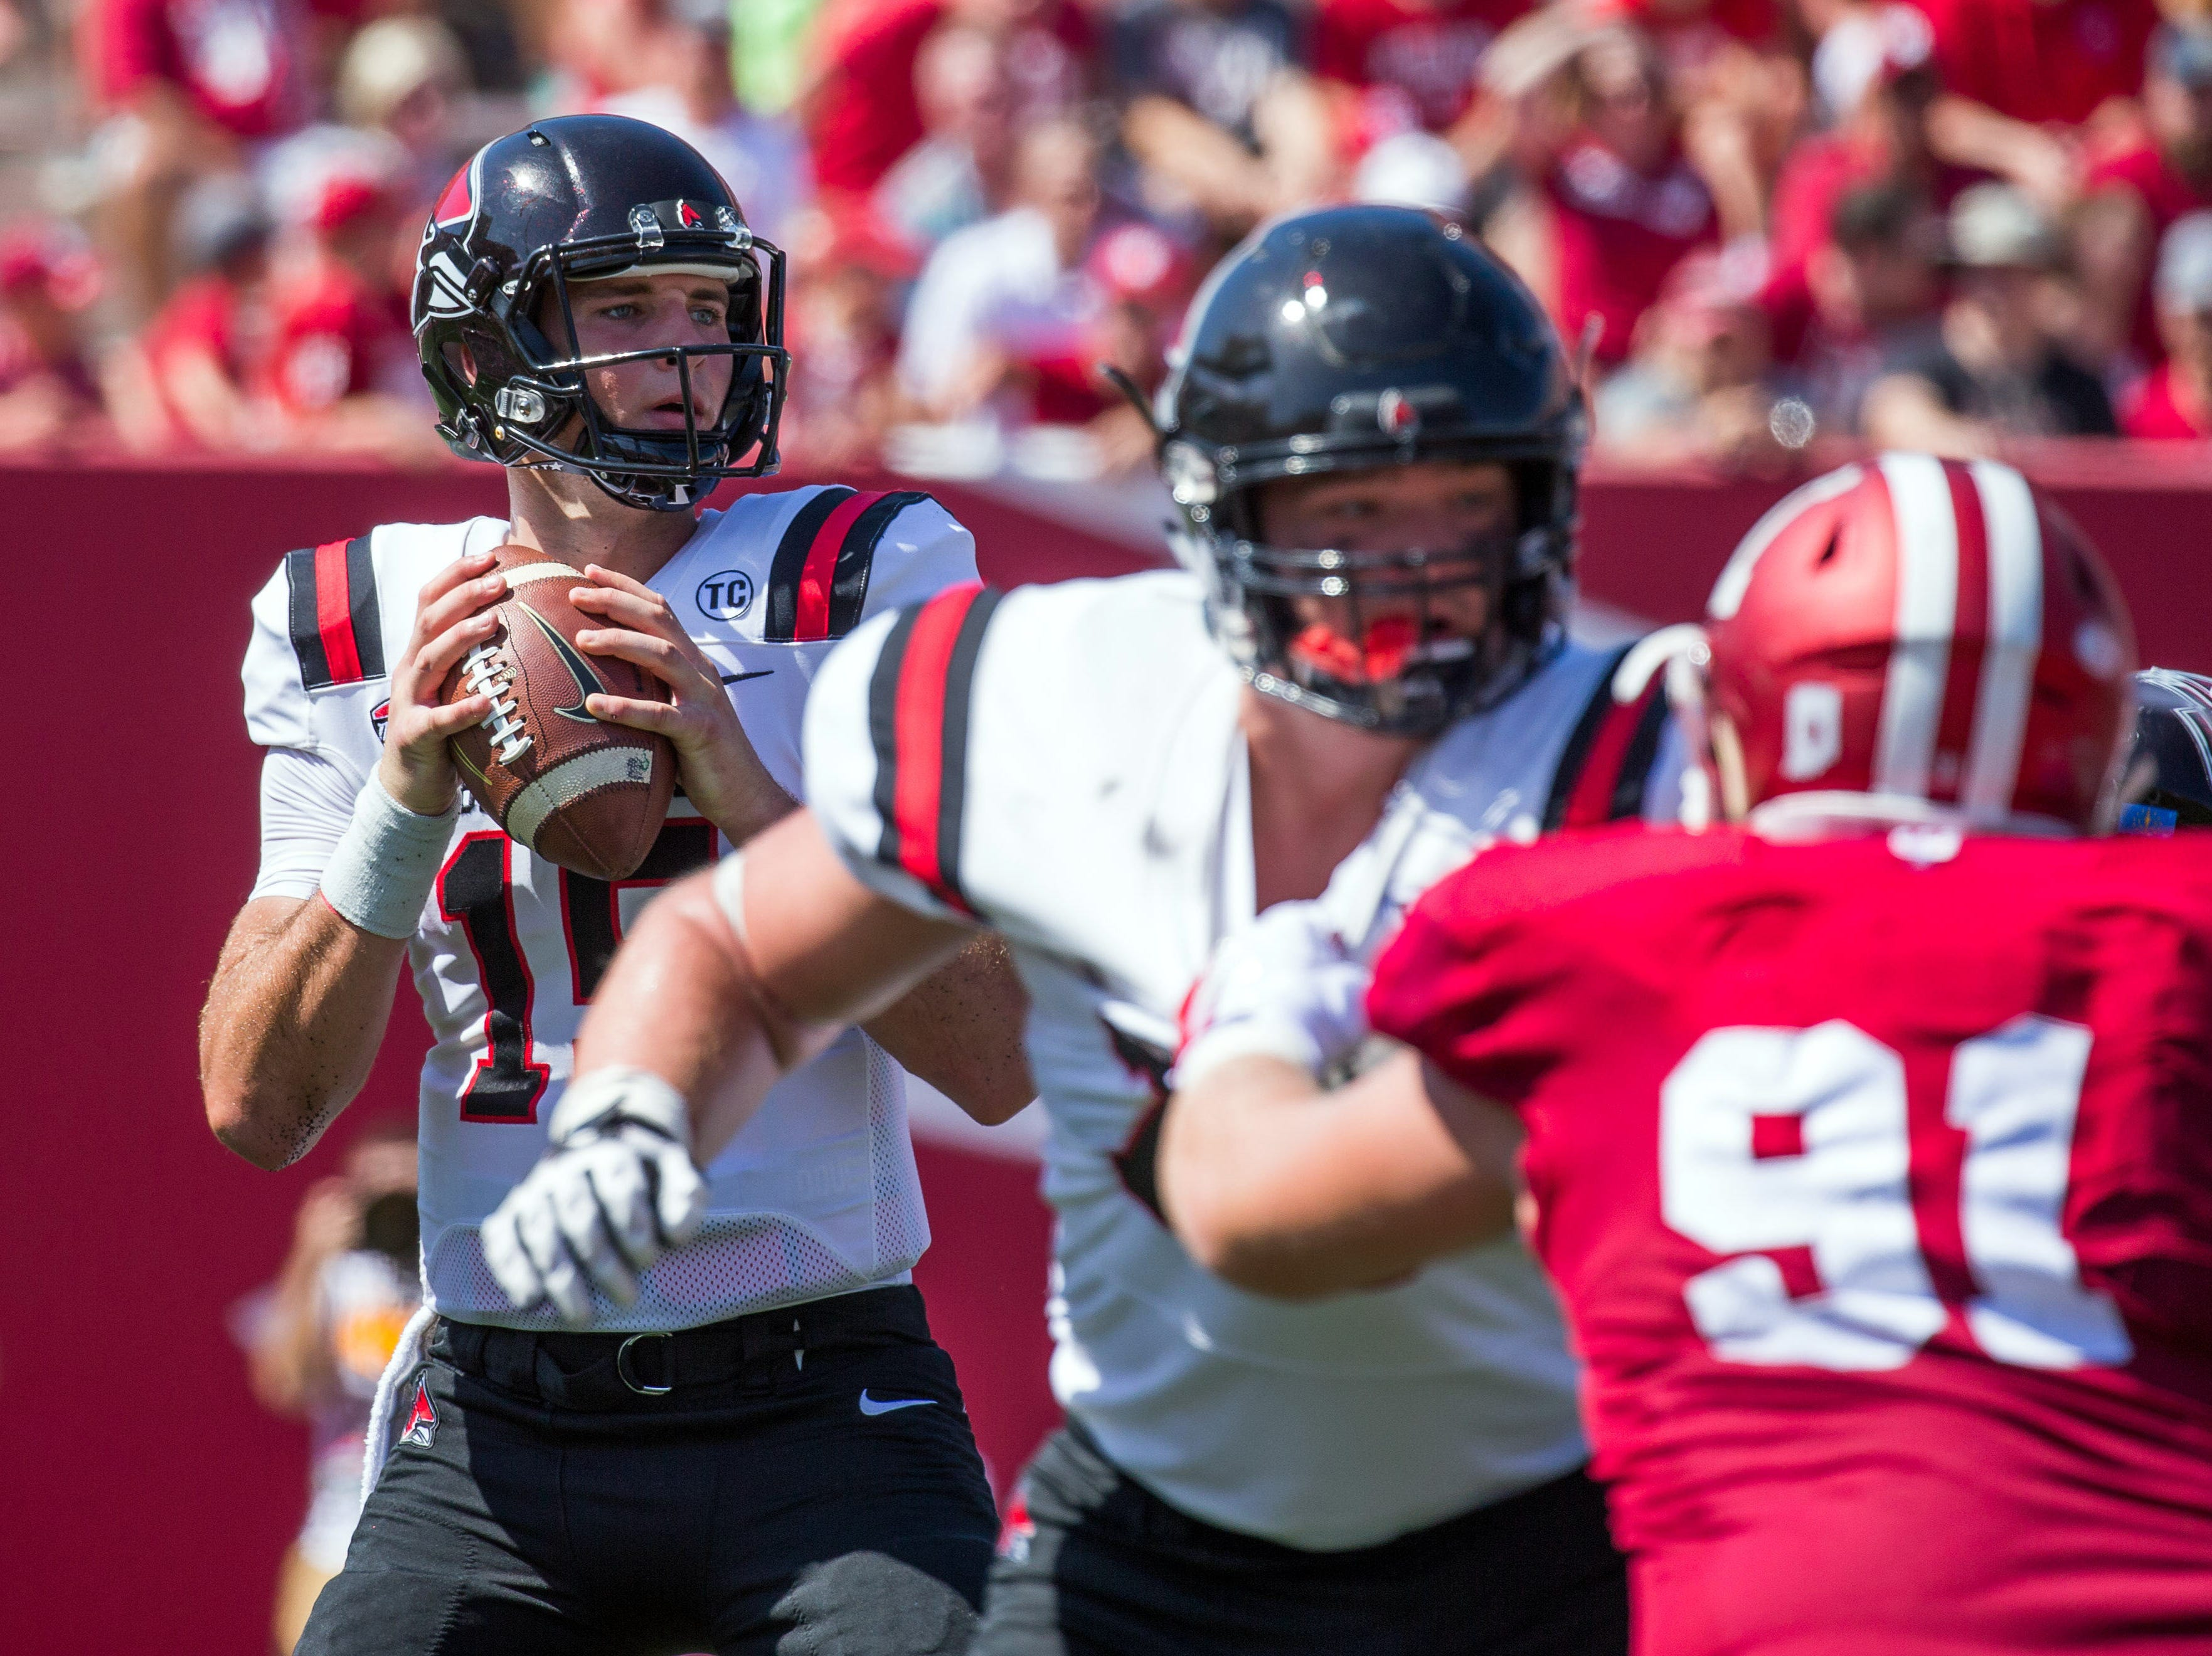 Ball State Cardinals quarterback Riley Neal (15) drops back to pass the ball in the second quarter against the Indiana Hoosiers at Memorial Stadium .